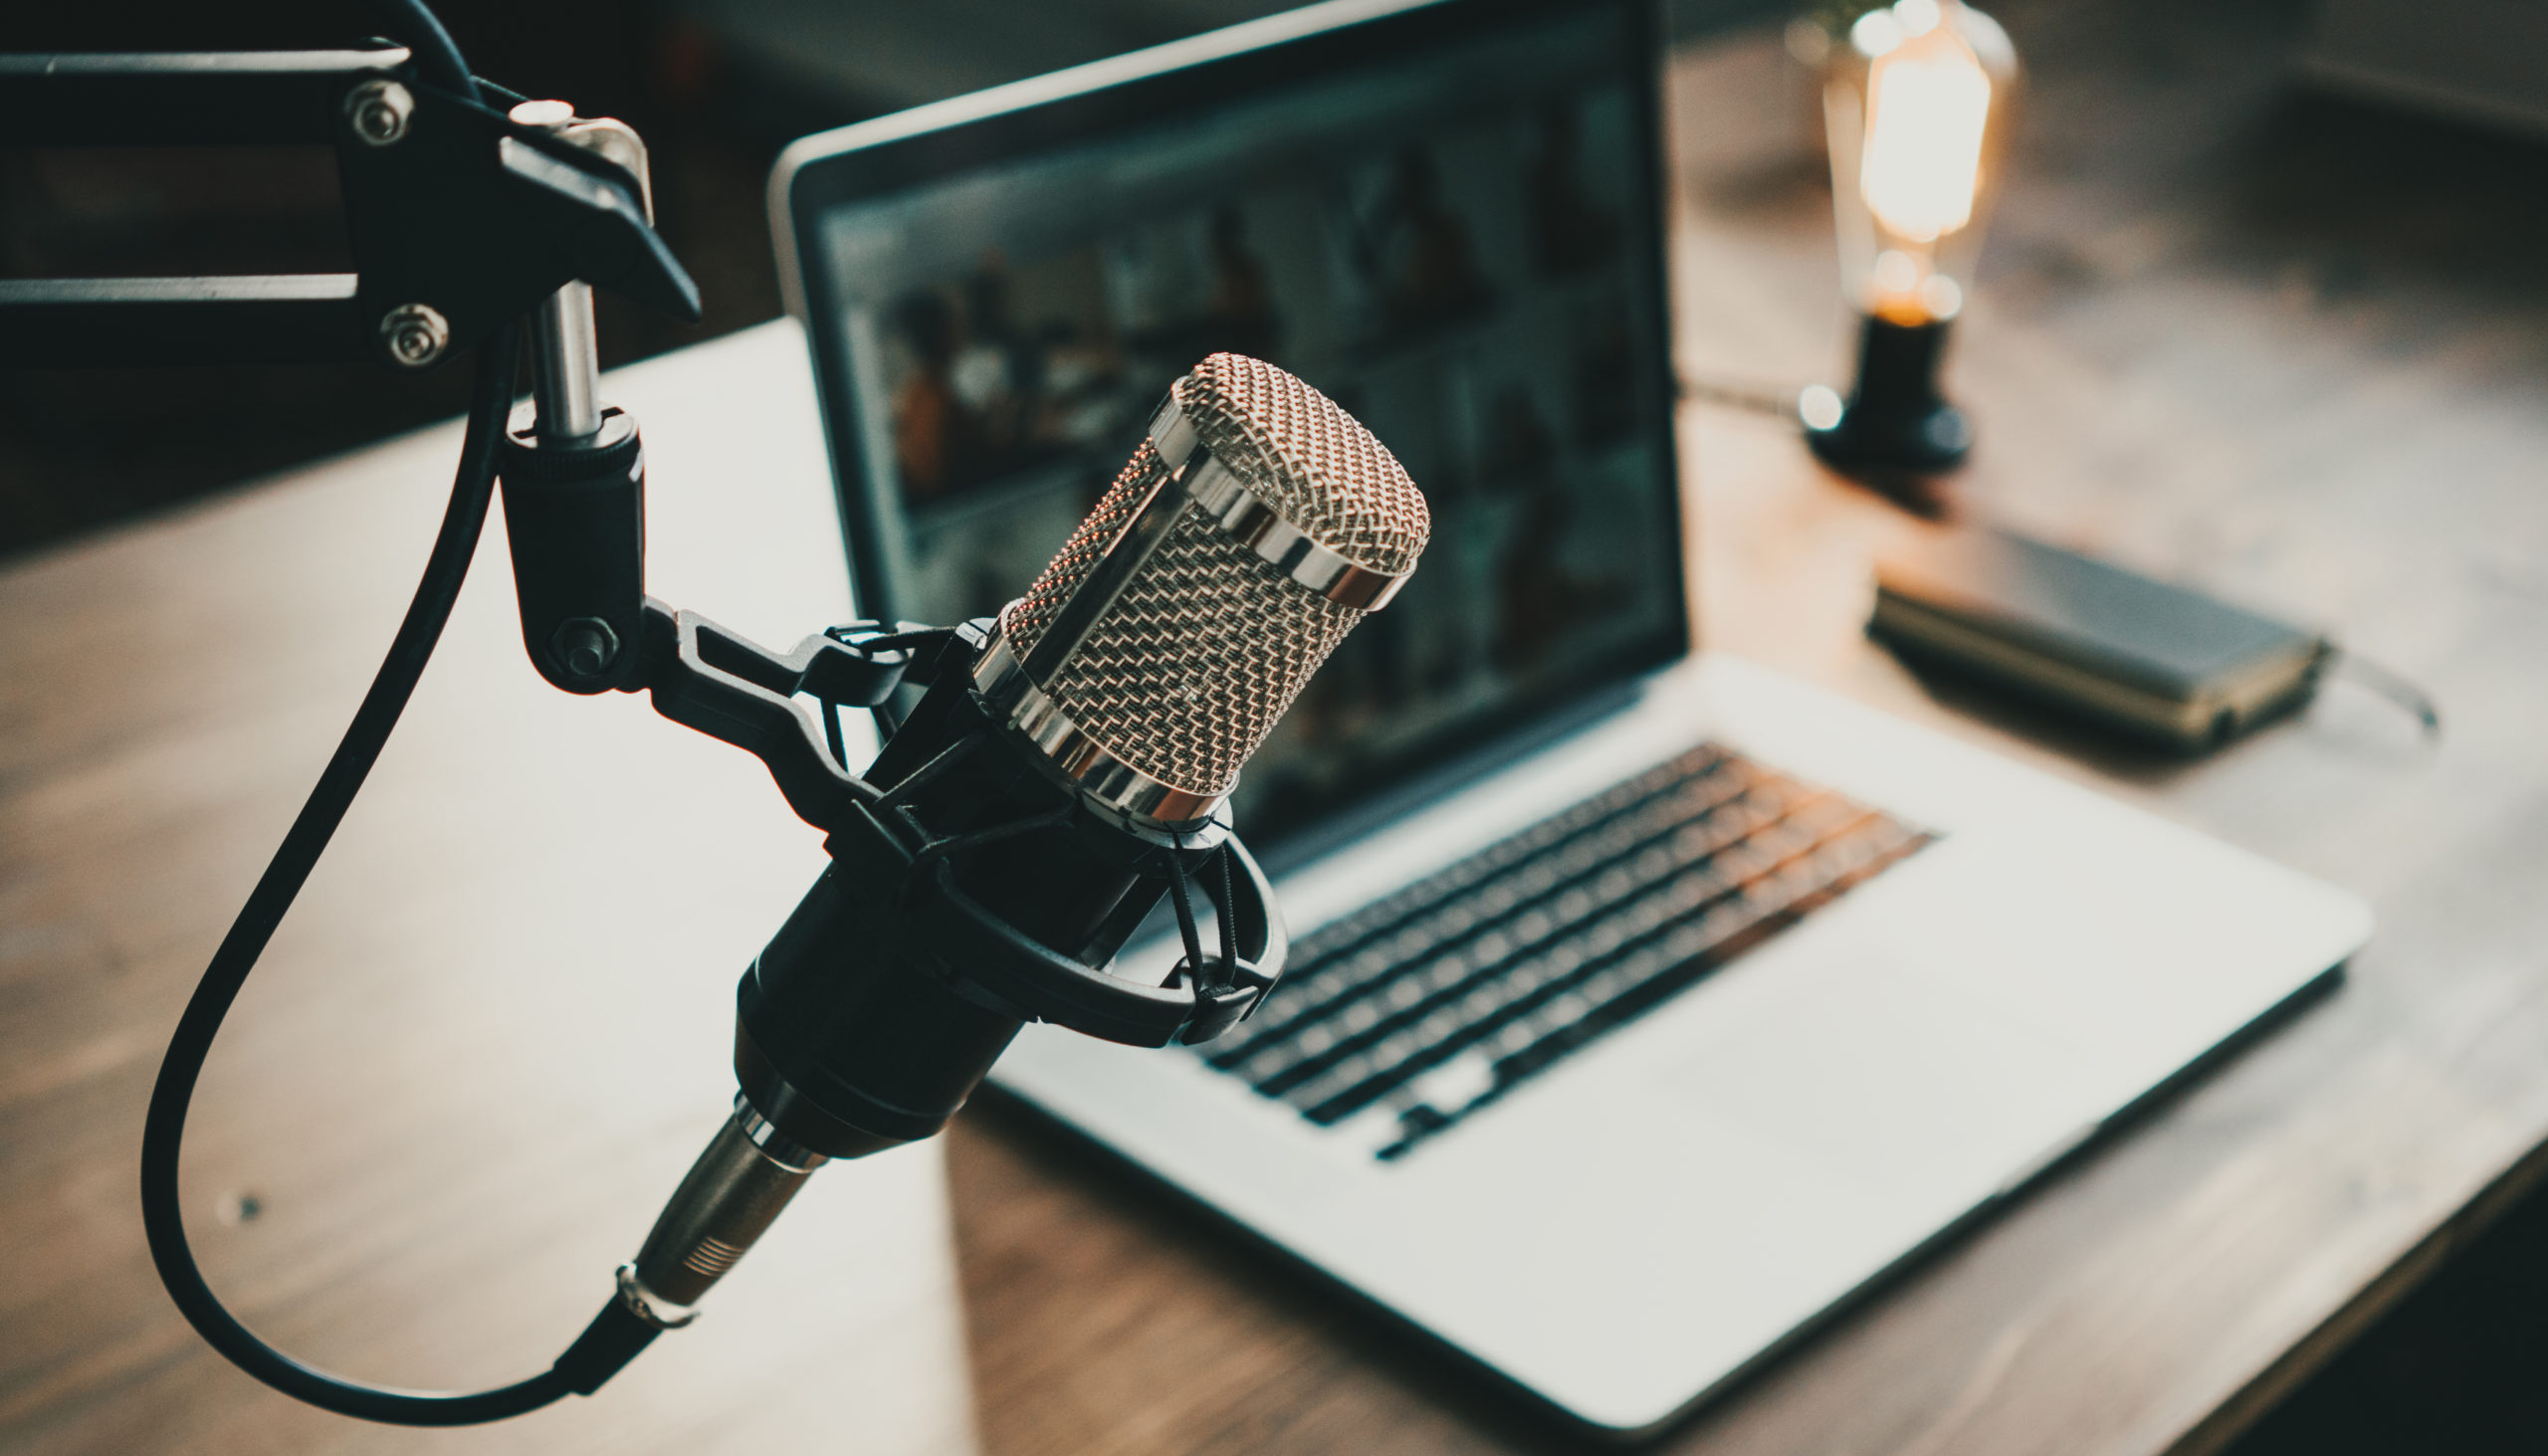 Microphone and MacBook computer